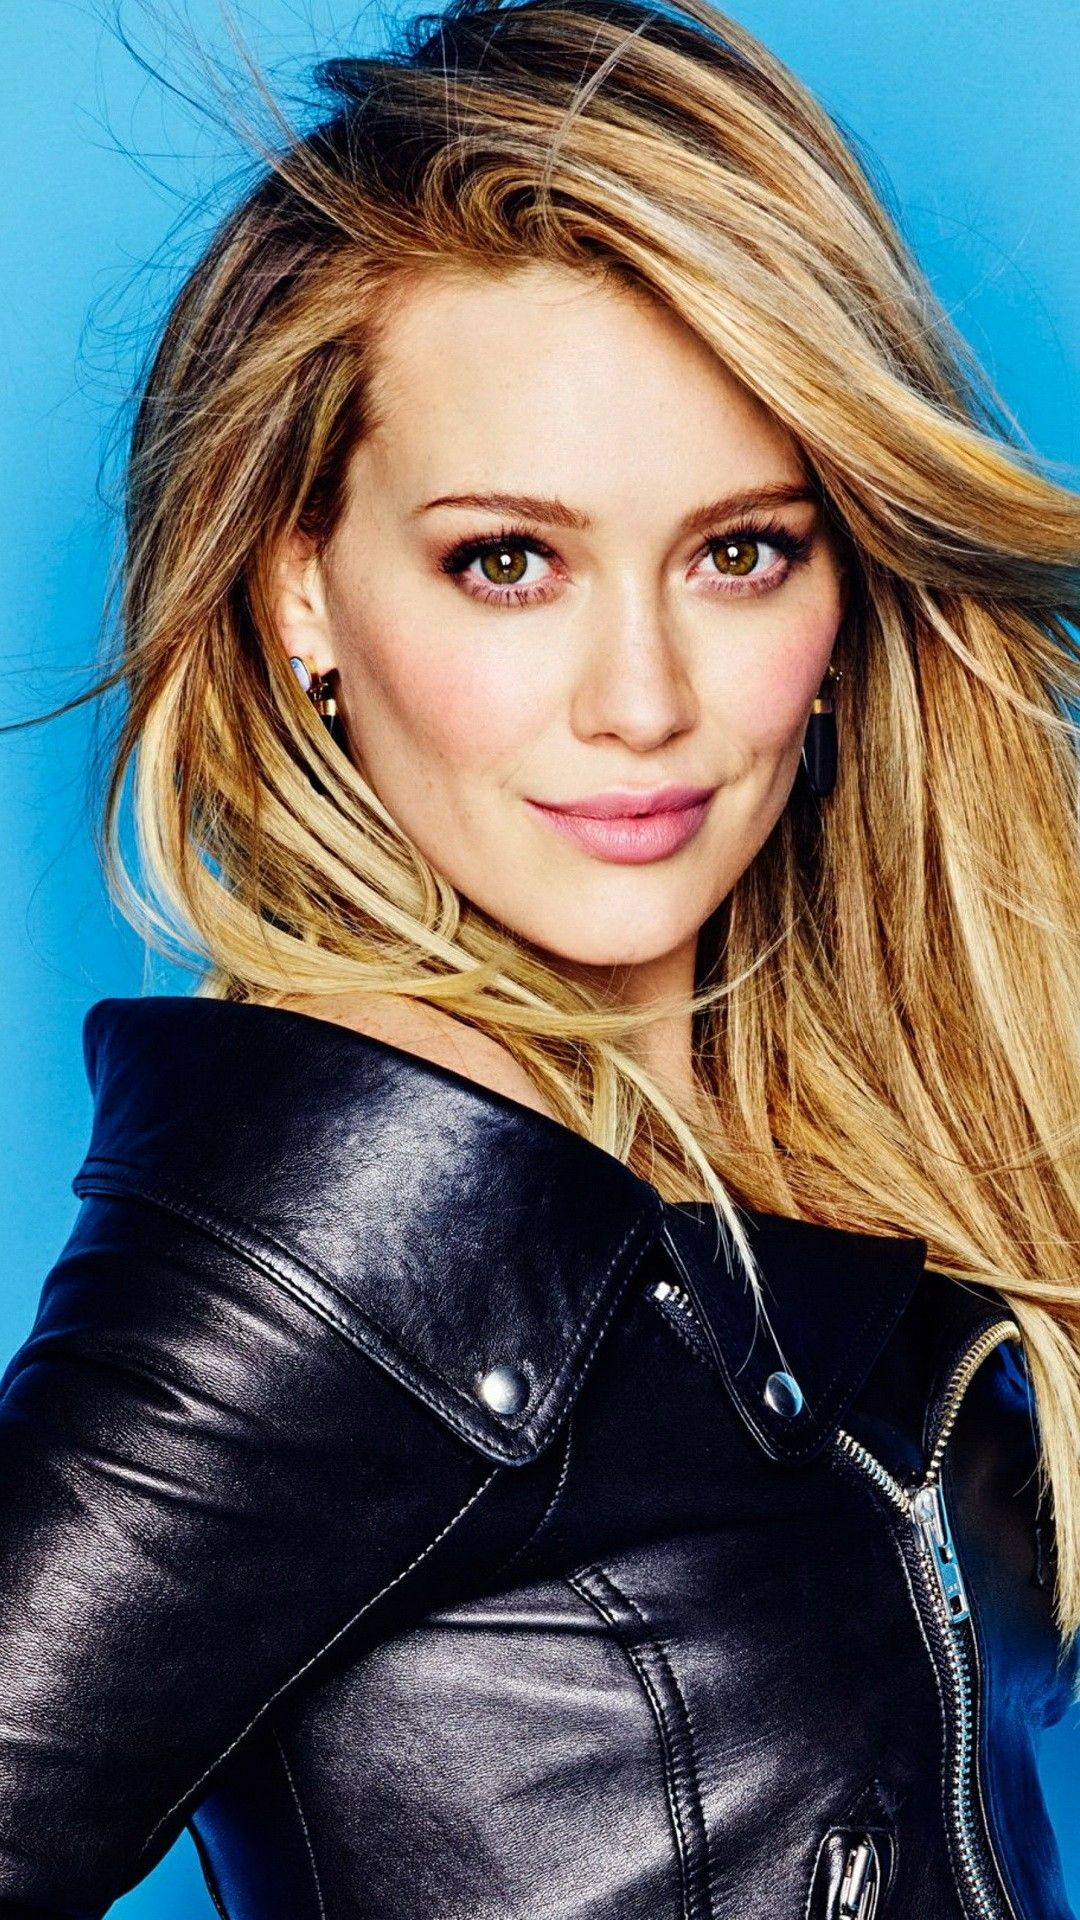 Pin by rubí chapa on hilary duff pinterest hilary duff feminine